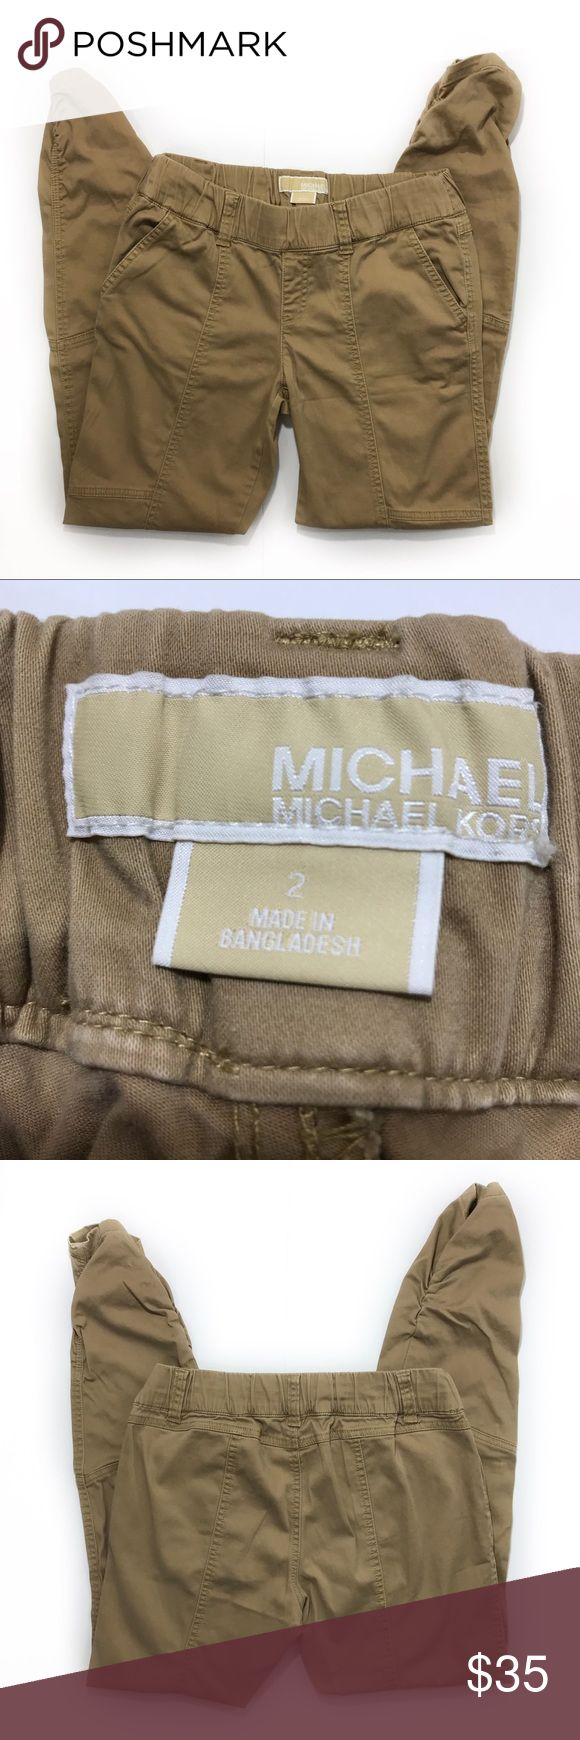 Michael Kors Ruched Ankle Slim Fit Joggers sz 2 Michael Kors joggers, size 2. Khaki in color. Elastic waistband with belt loops (does not come with belt). Ruched ankle detail. Slim fit style. EUC - no visible flaws. These are the perfect travel pants - casual and comfy!  Approx measurements laid flat:  waist: 14.5 front rise: 8.25 inseam: 27  A6 Michael Kors Pants Track Pants & Joggers